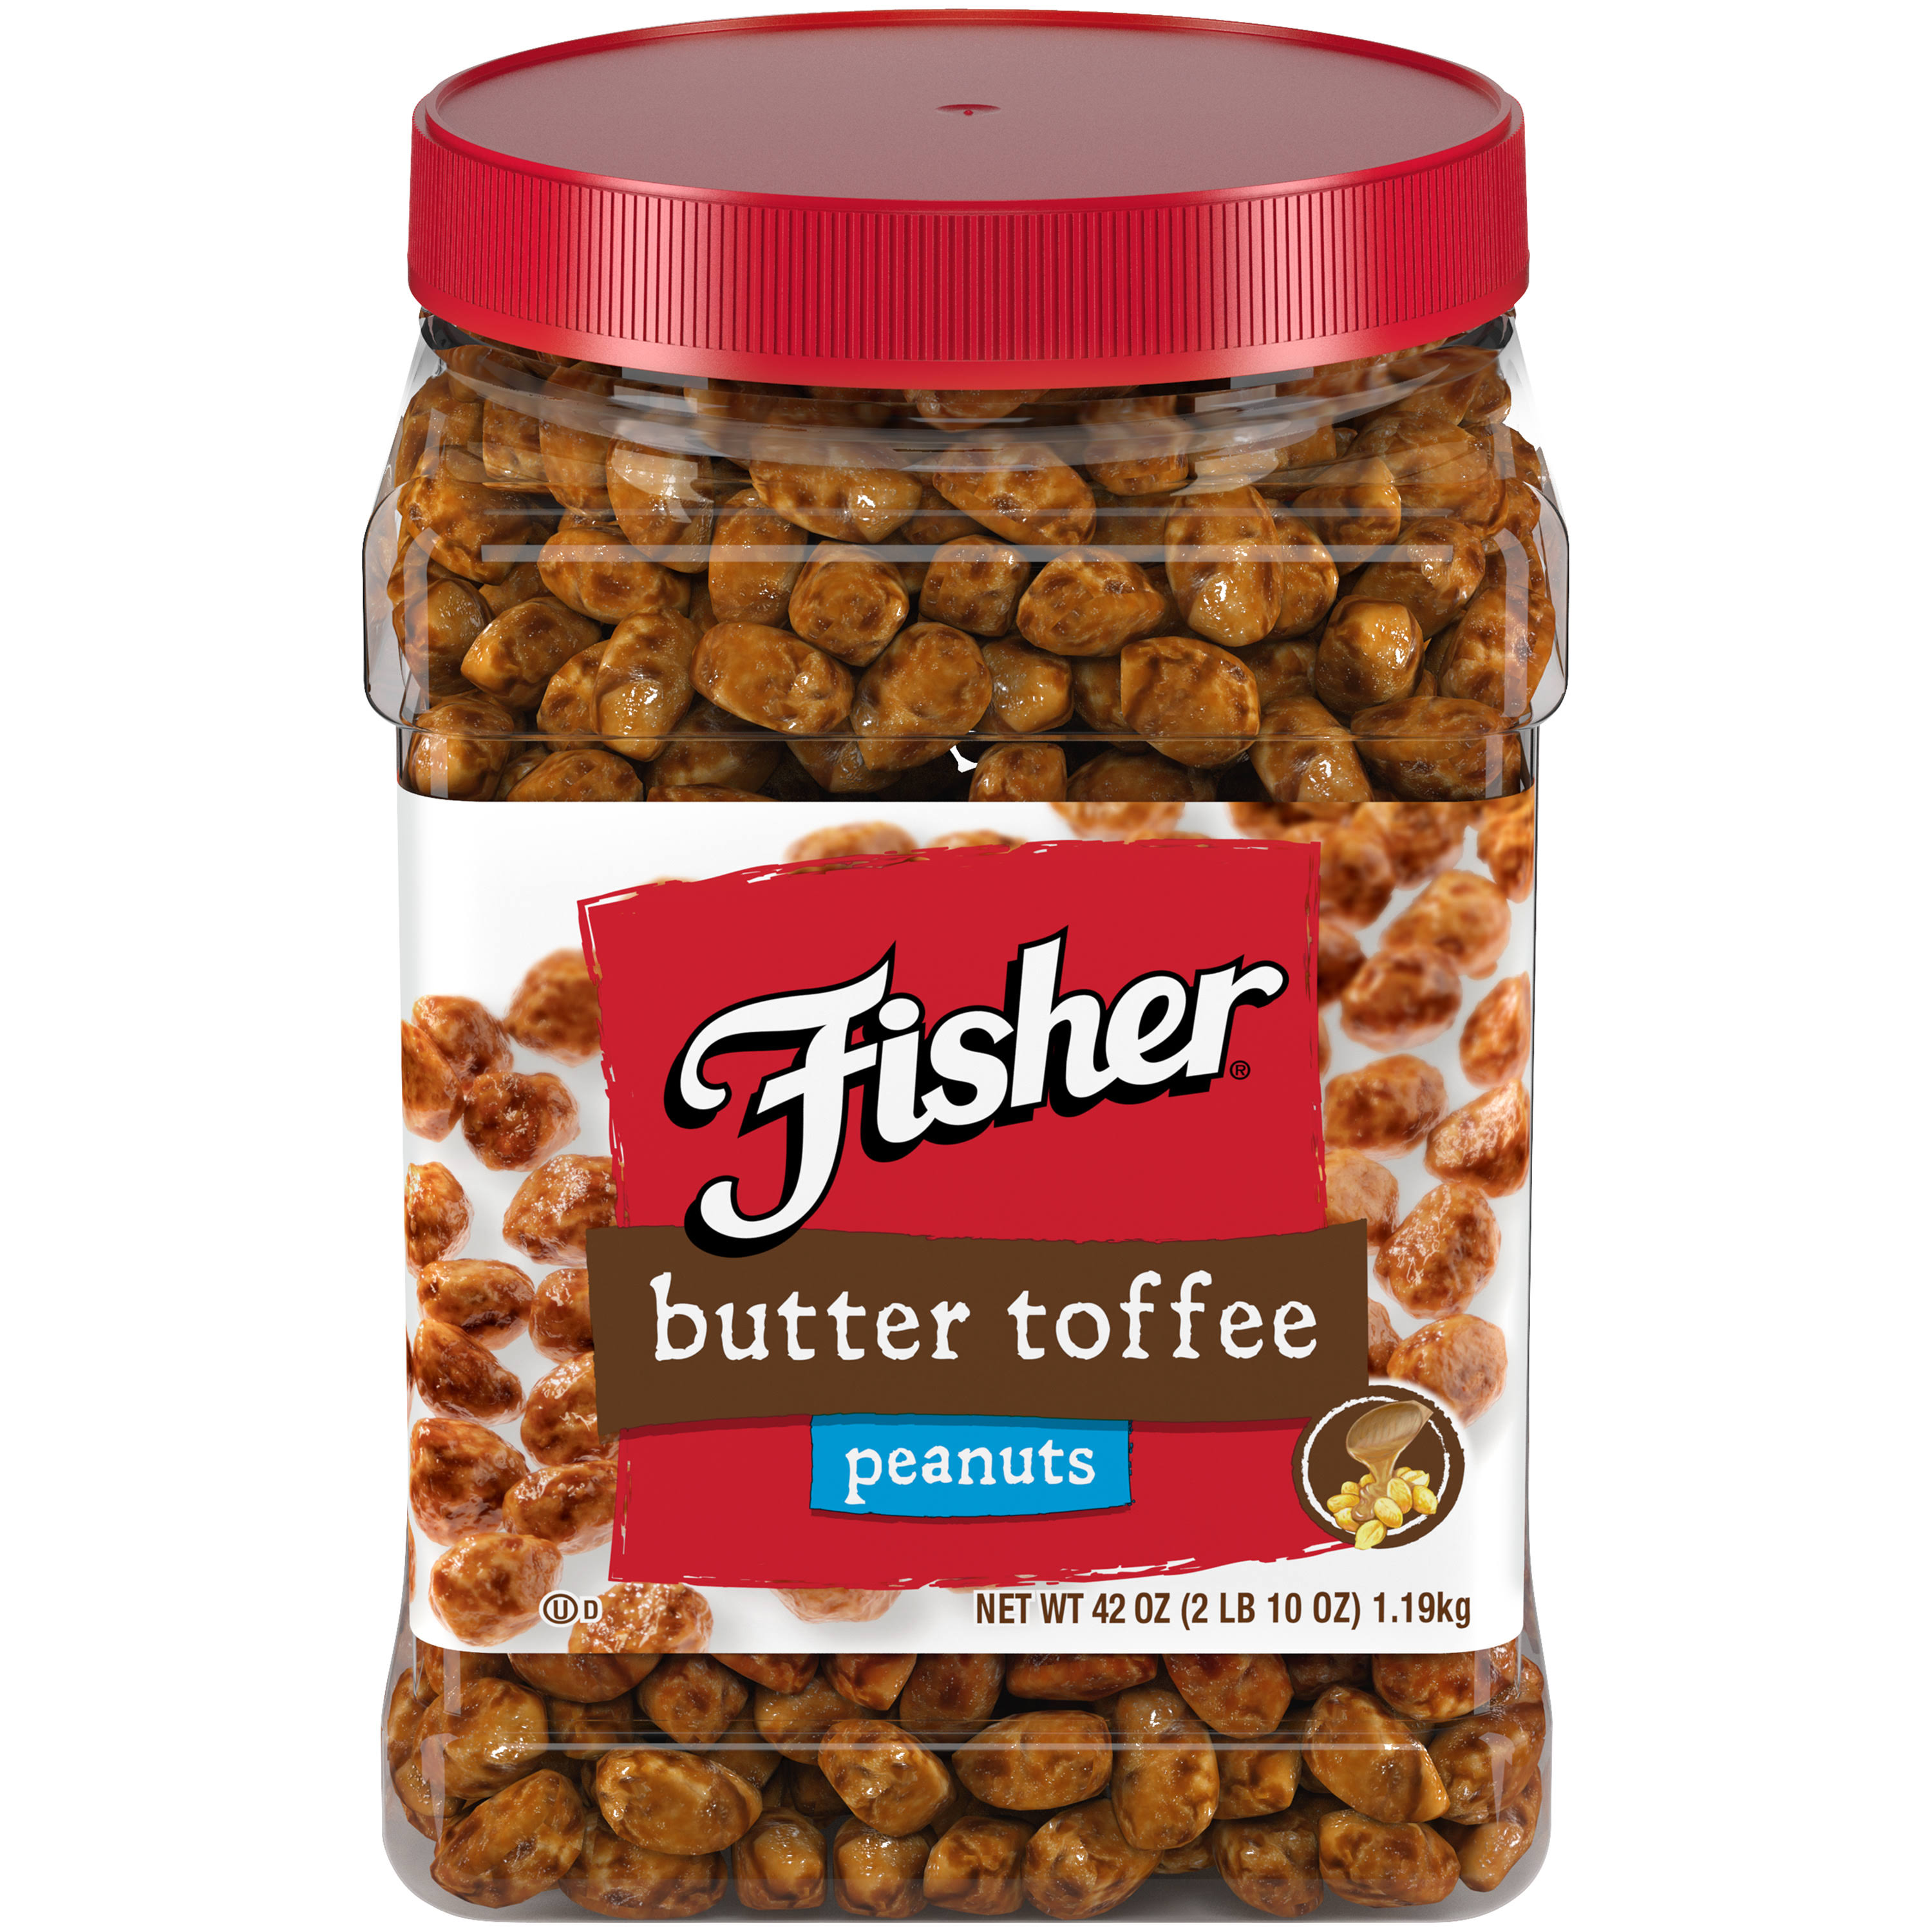 Fisher Butter Toffee Peanuts - 42oz